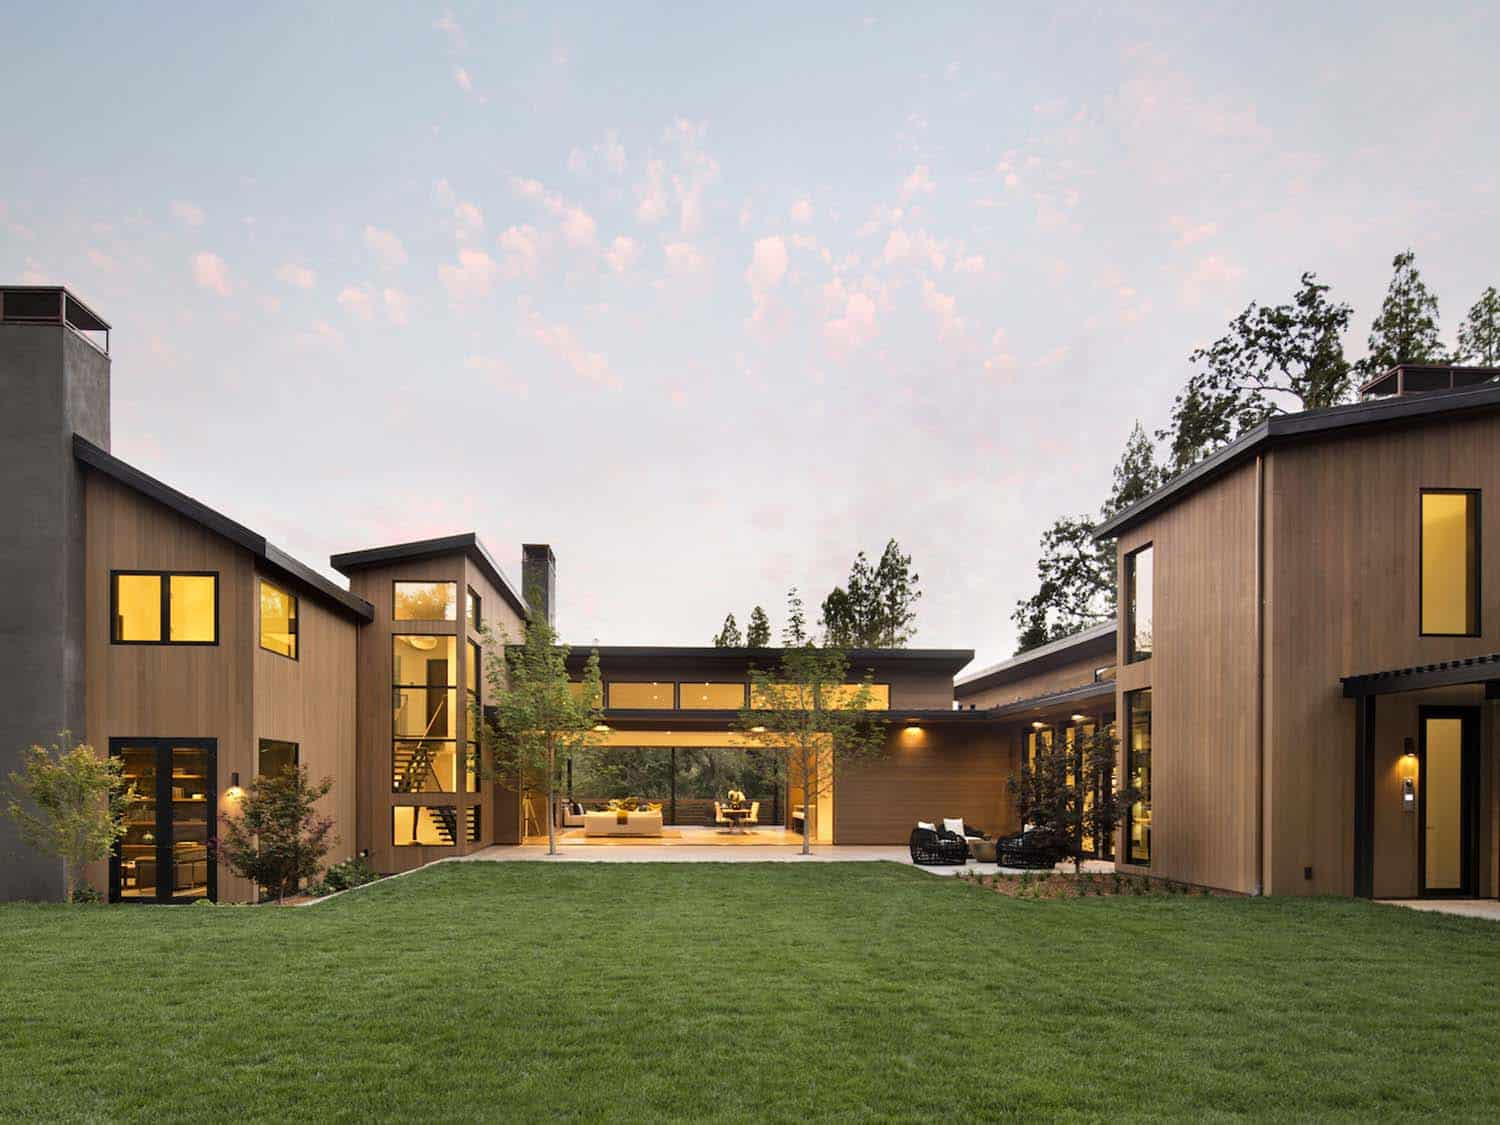 Contemporary Home Design-Butler Armsden Architects-01-1 Kindesign